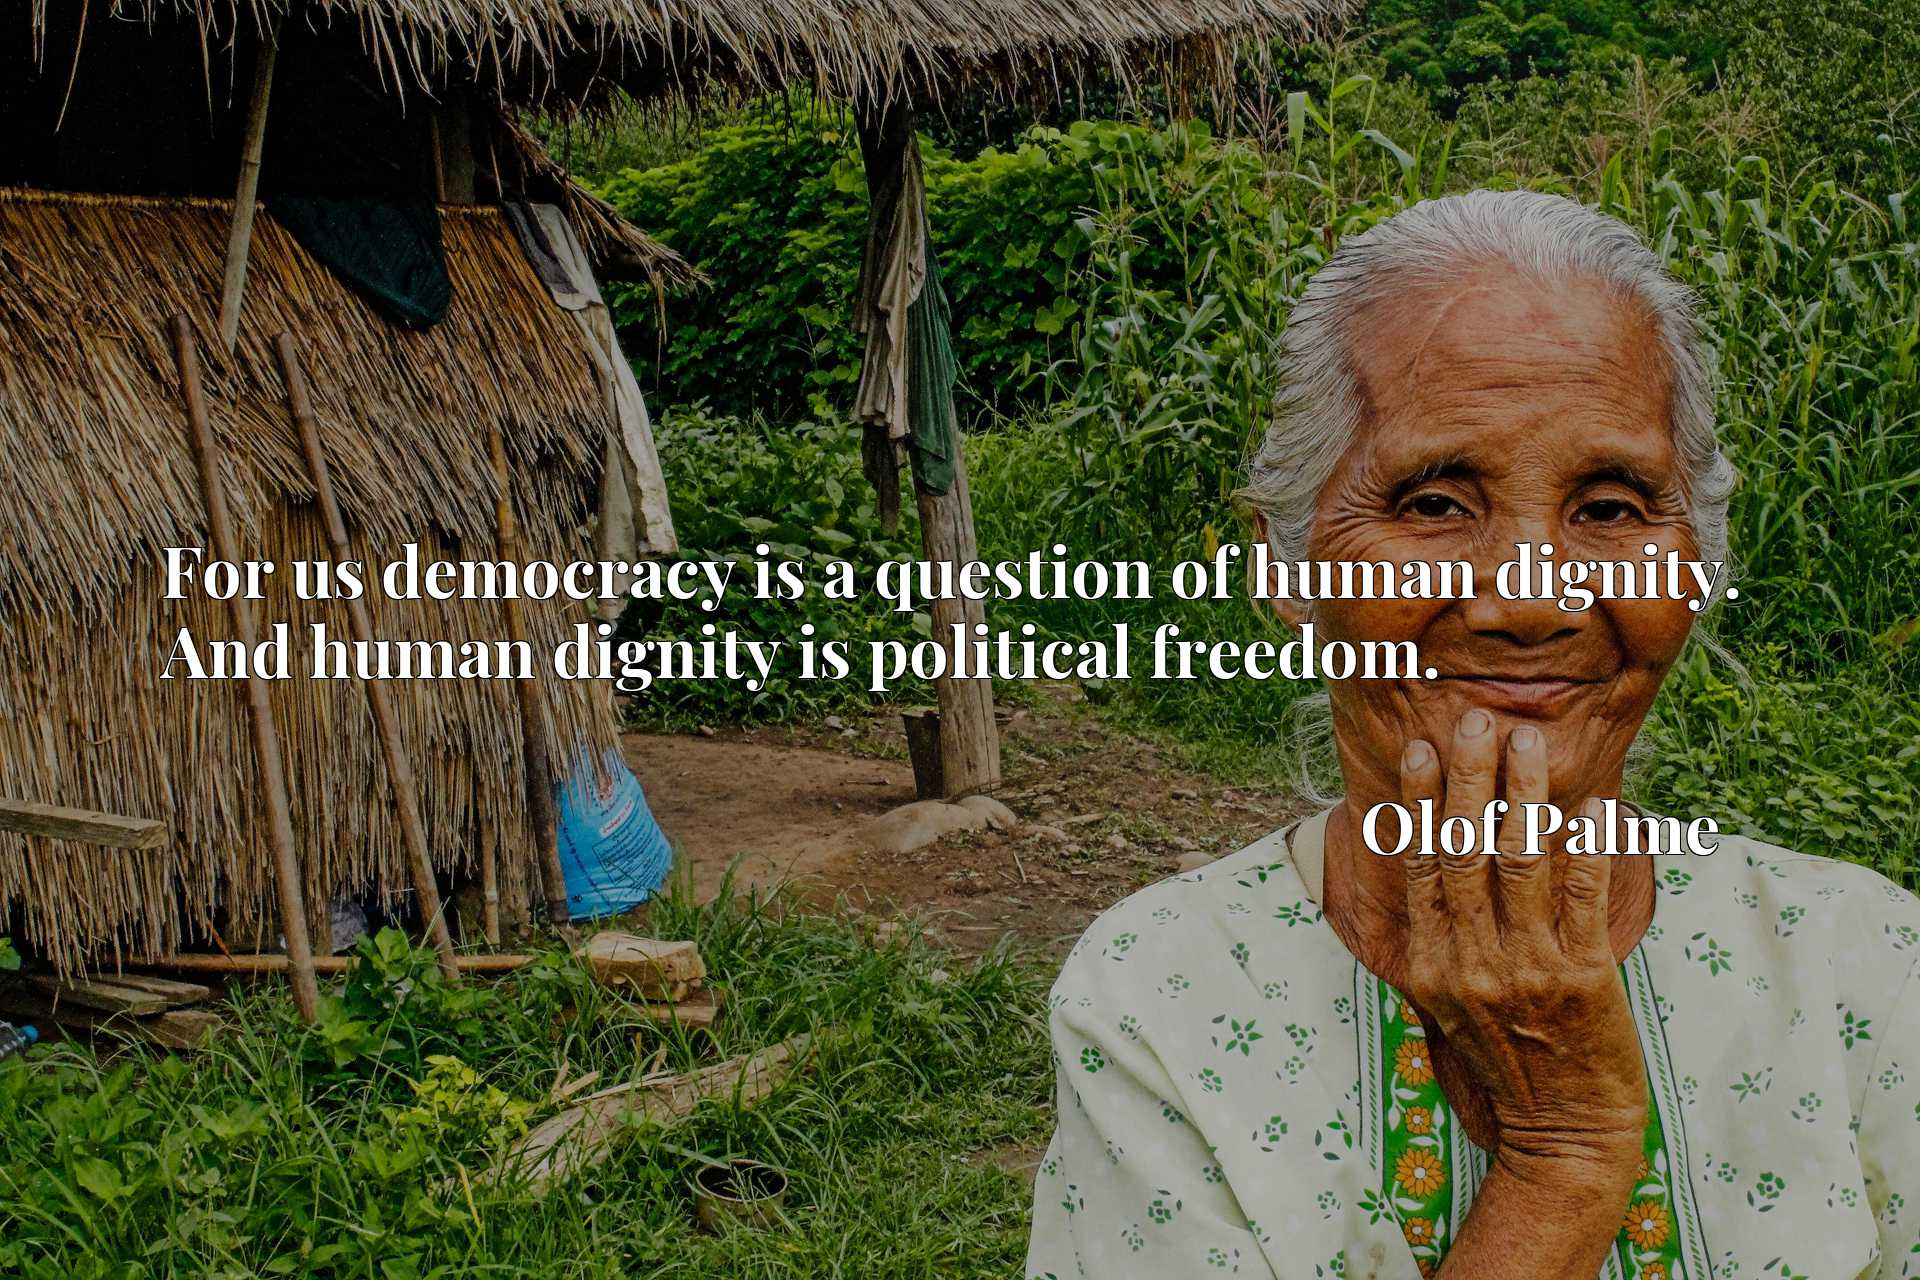 For us democracy is a question of human dignity. And human dignity is political freedom.